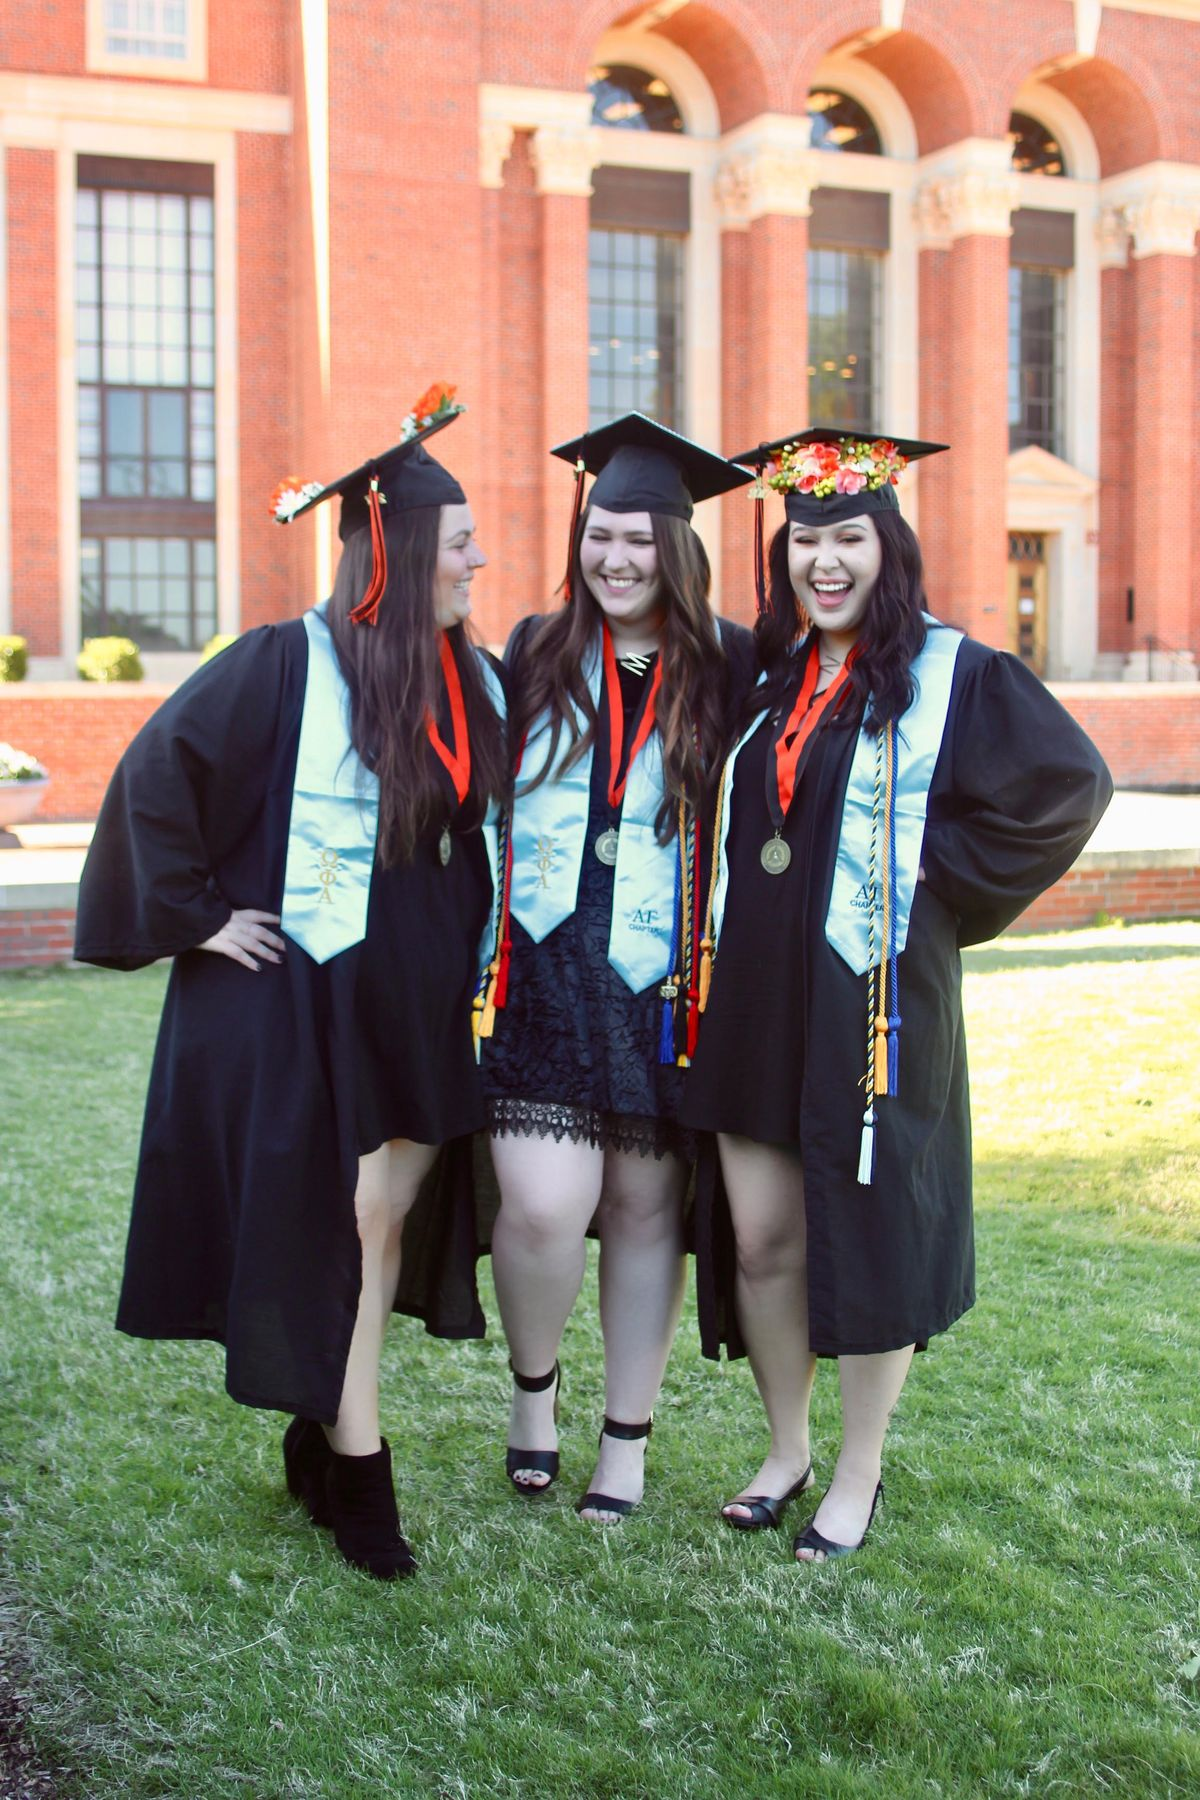 11 Reasons To Live With Your Best Friends In College